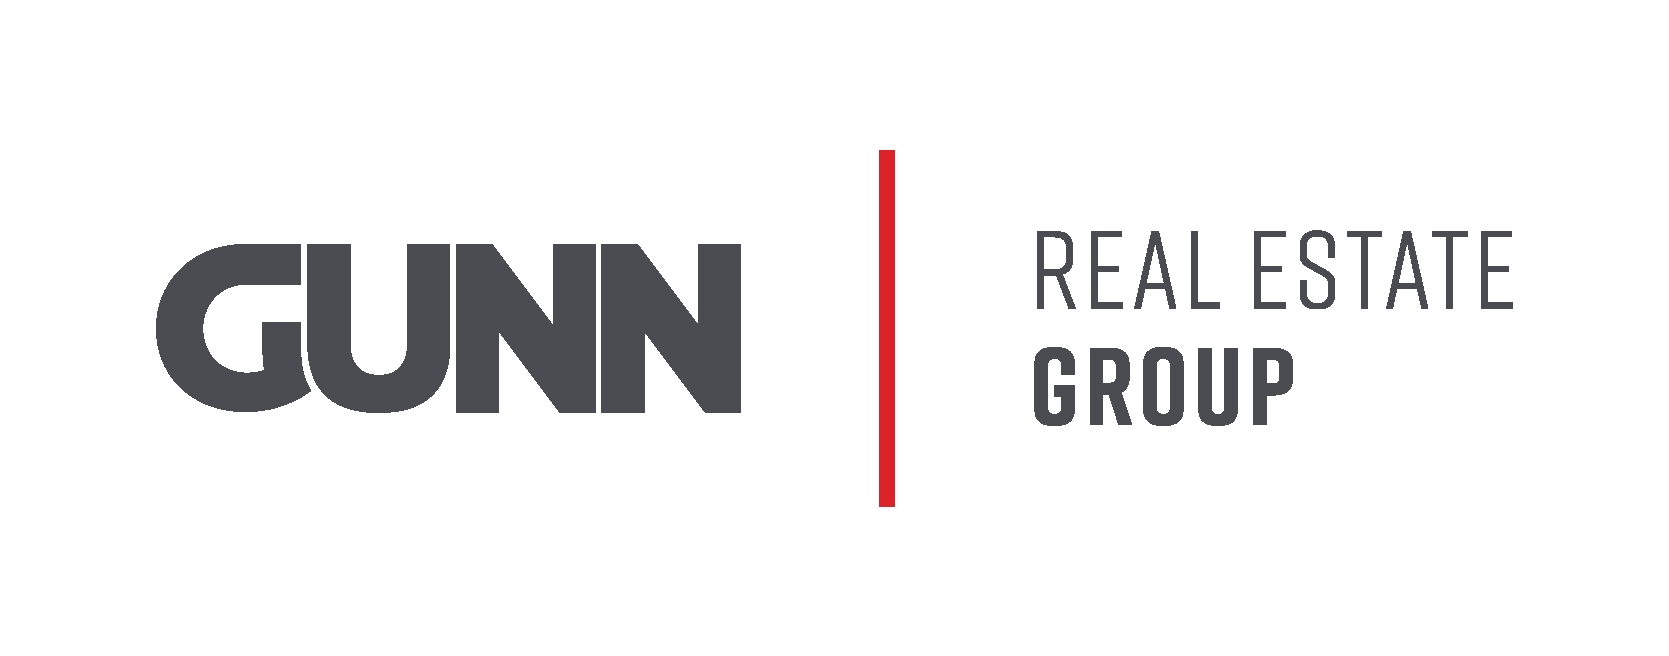 Gunn Real Estate Group